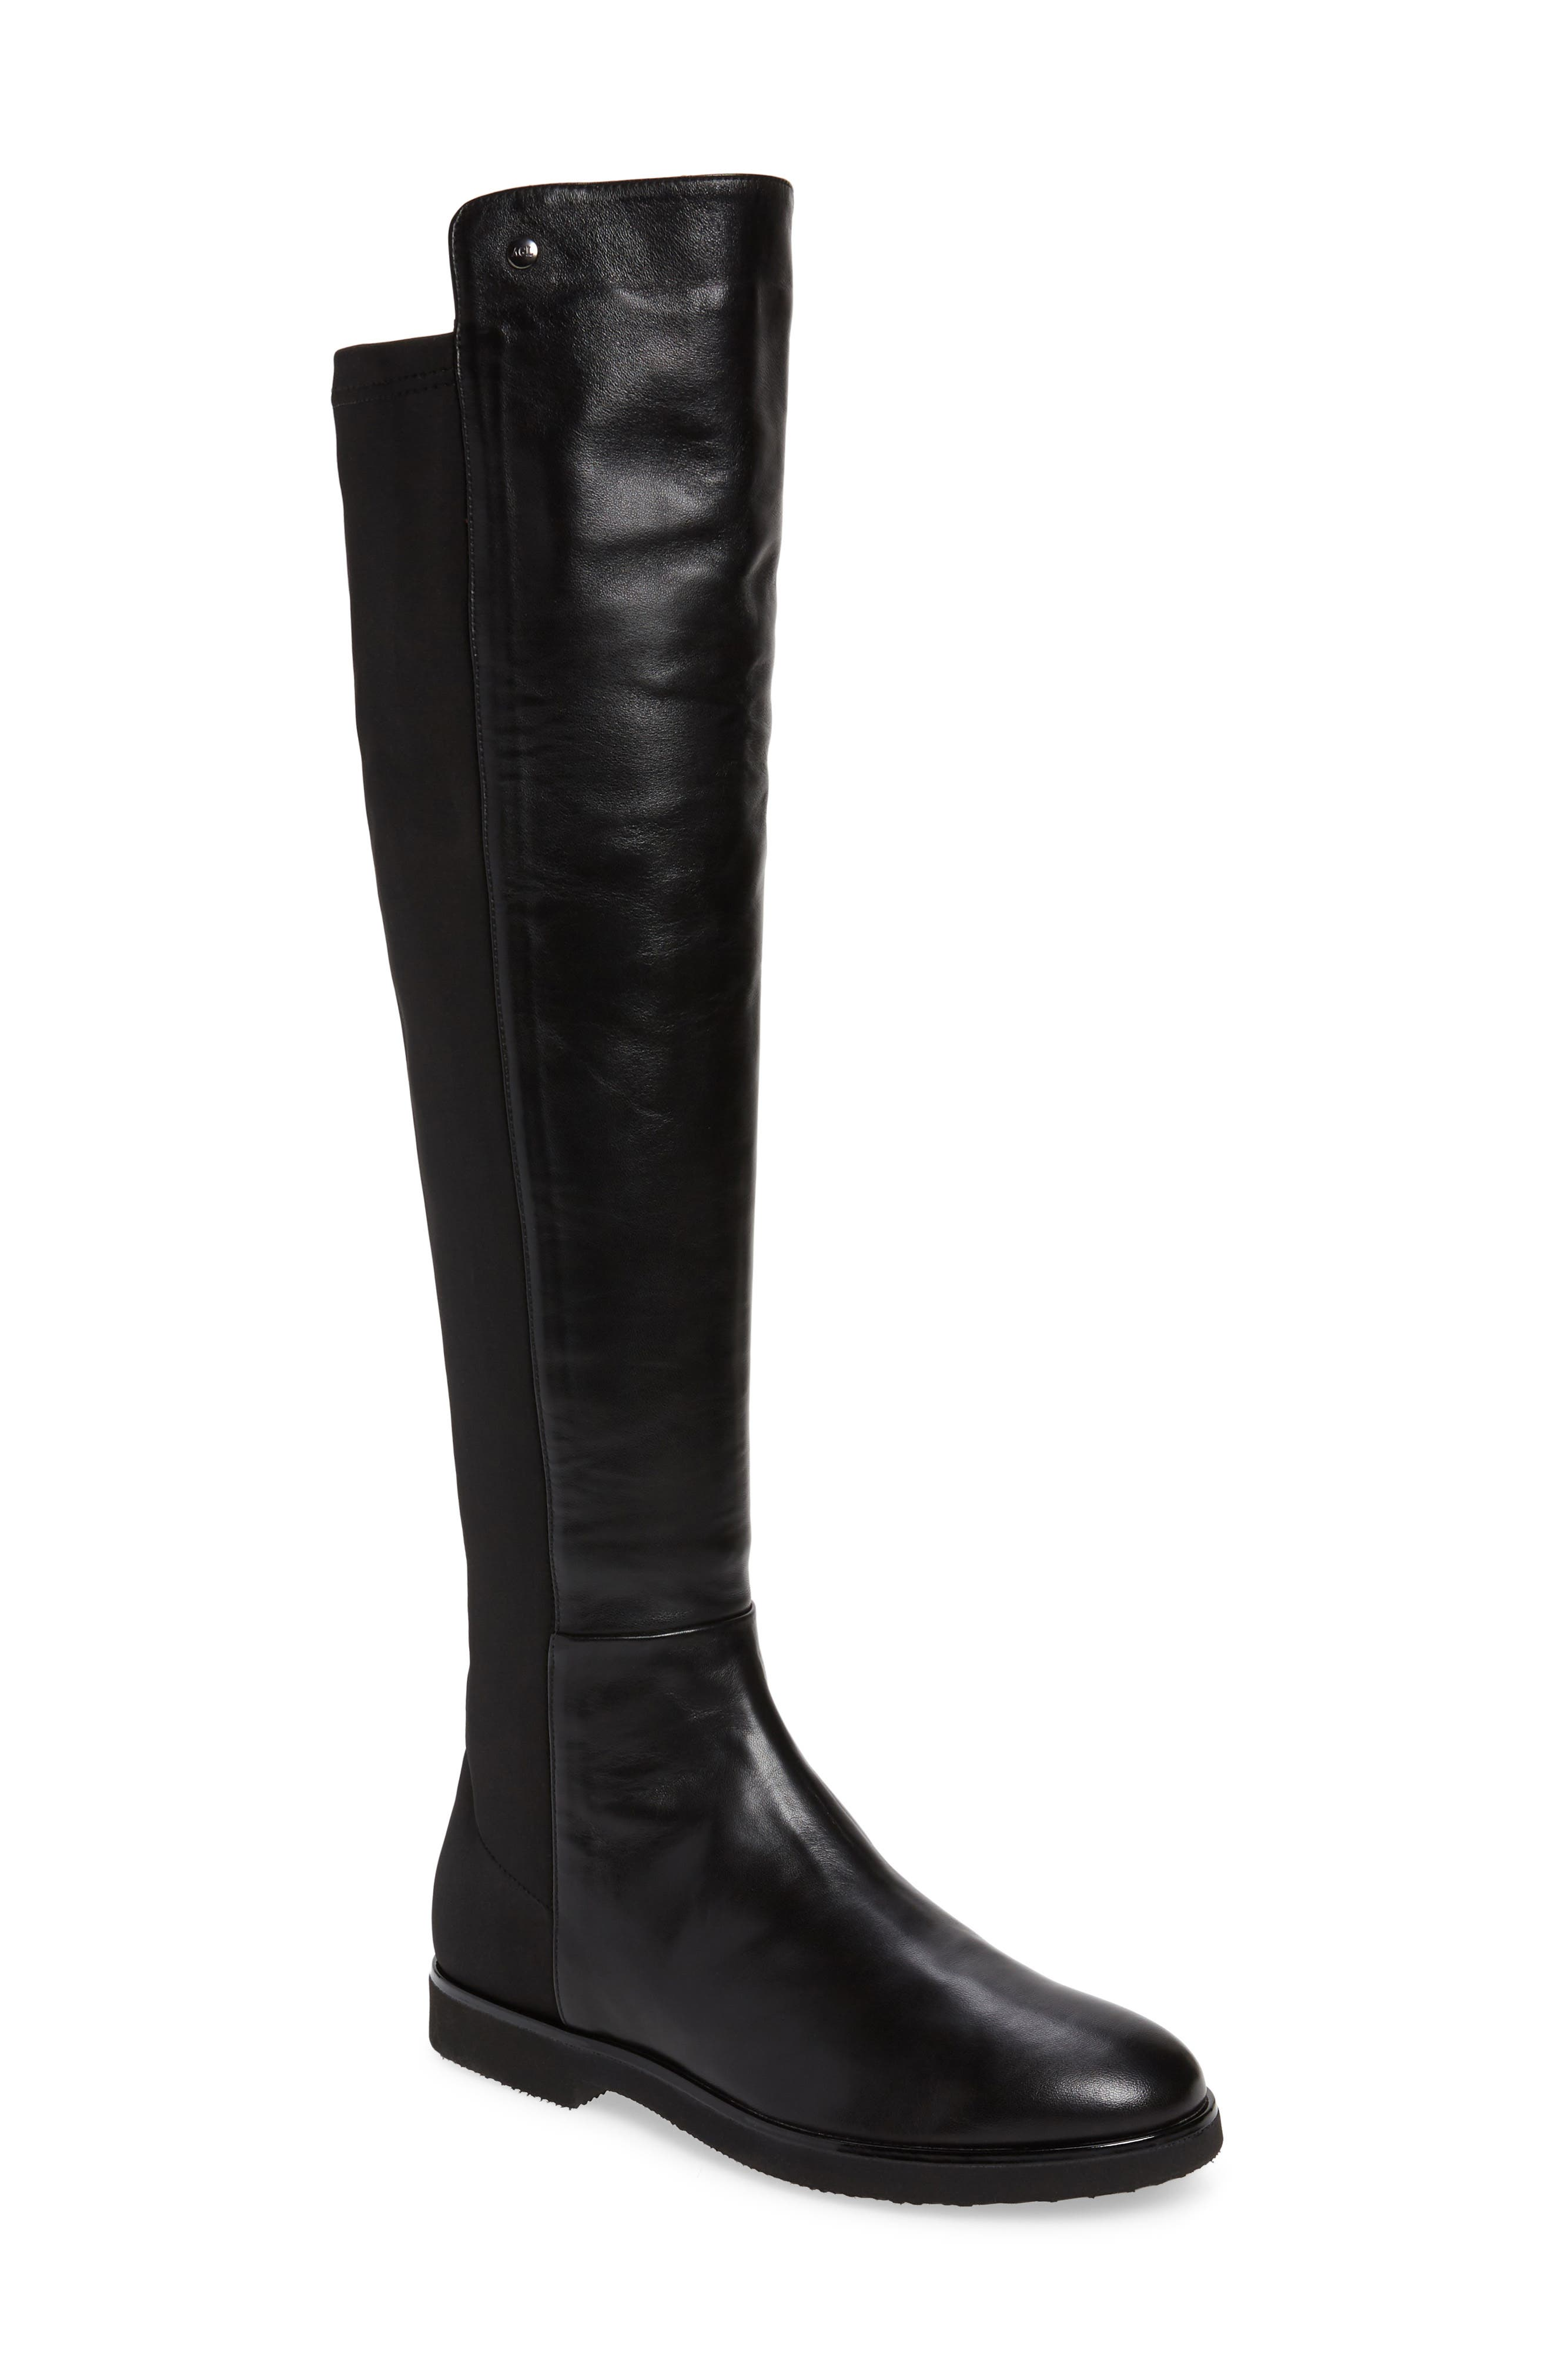 A stretchy back panel ensures a snug, flexible fit for this sophisticated tall boot grounded by a lightweight flexible sole. Style Name: Agl Softy Tall Boot (Women). Style Number: 5912458. Available in stores.